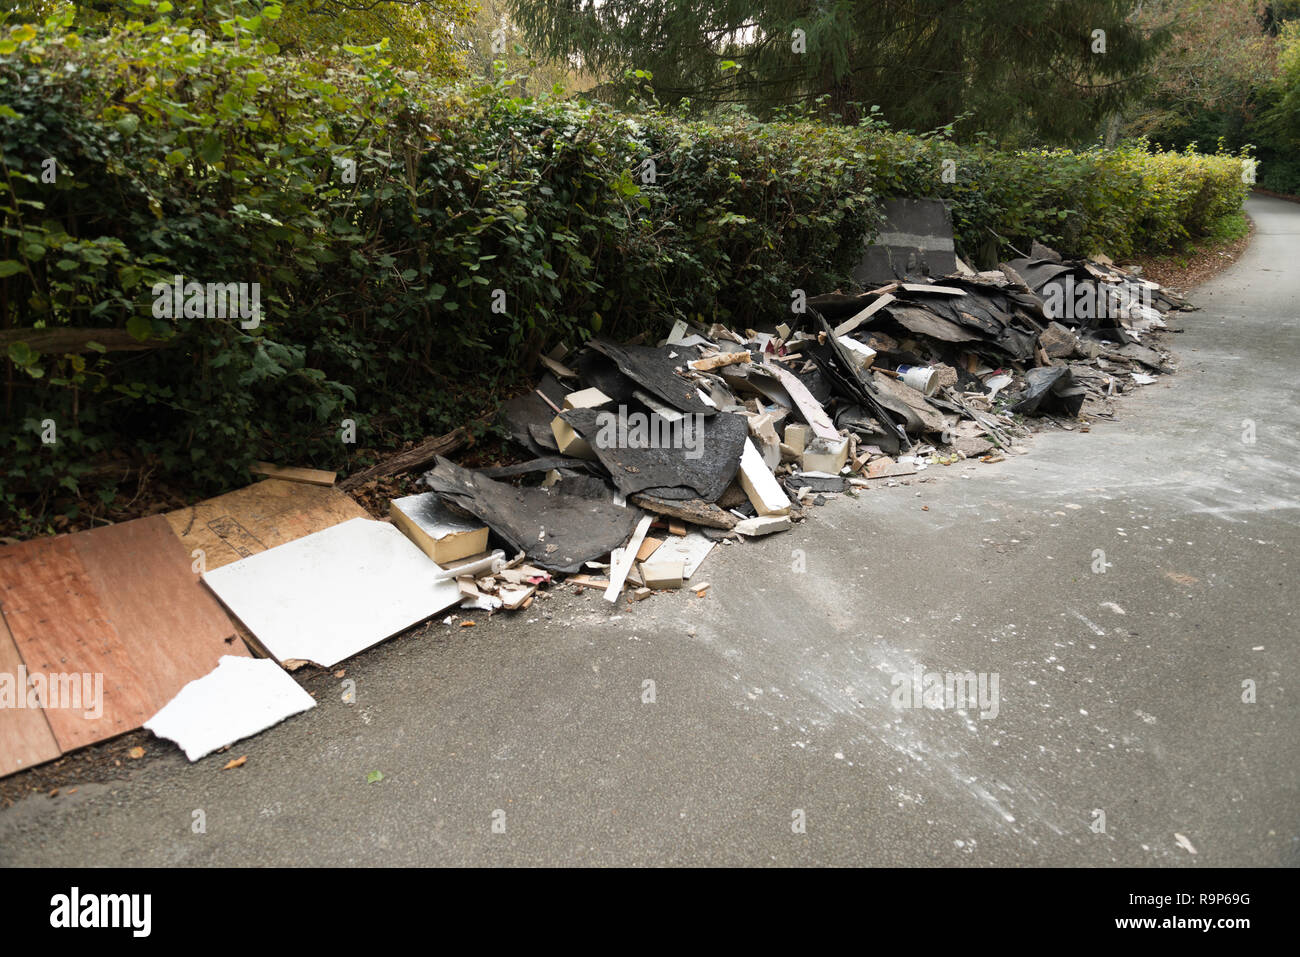 Flytipping waste down a country lane. - Stock Image